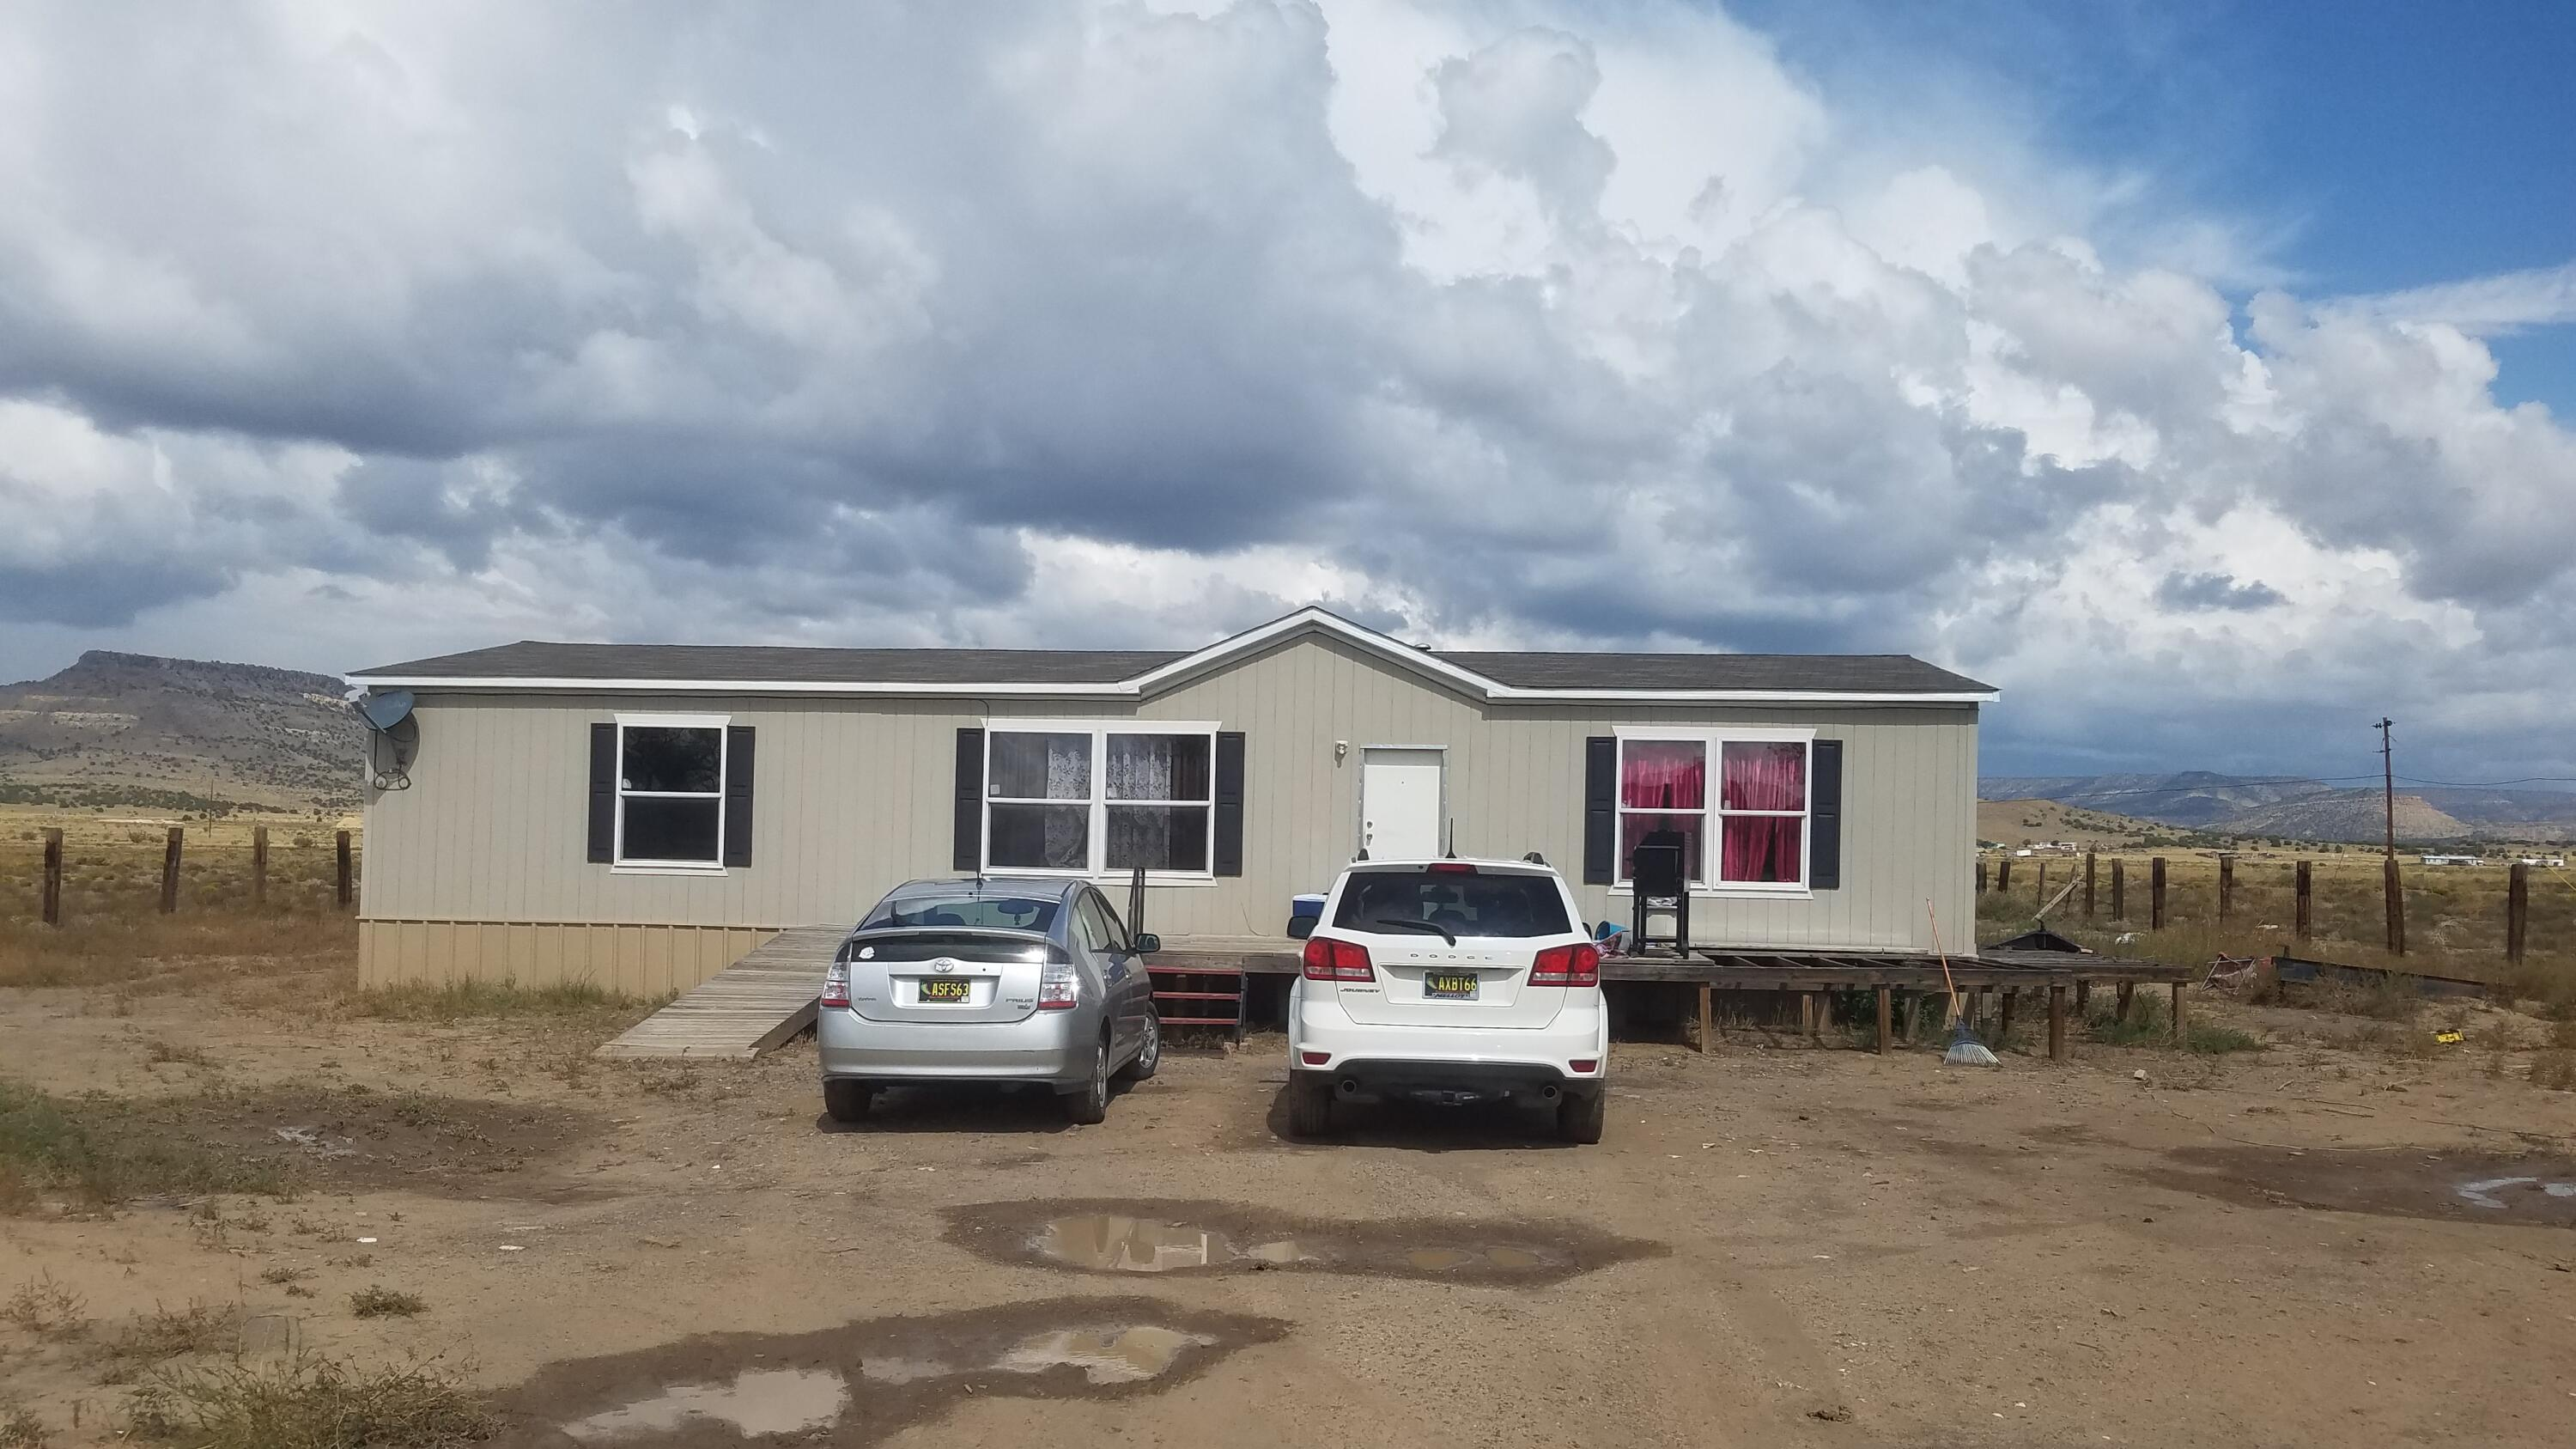 Newer mobile home and small restaurant, located on Old Route 66. Located 1 mile from sky city casino. Located on 3.55 acres, with nice views of Mount Taylor.